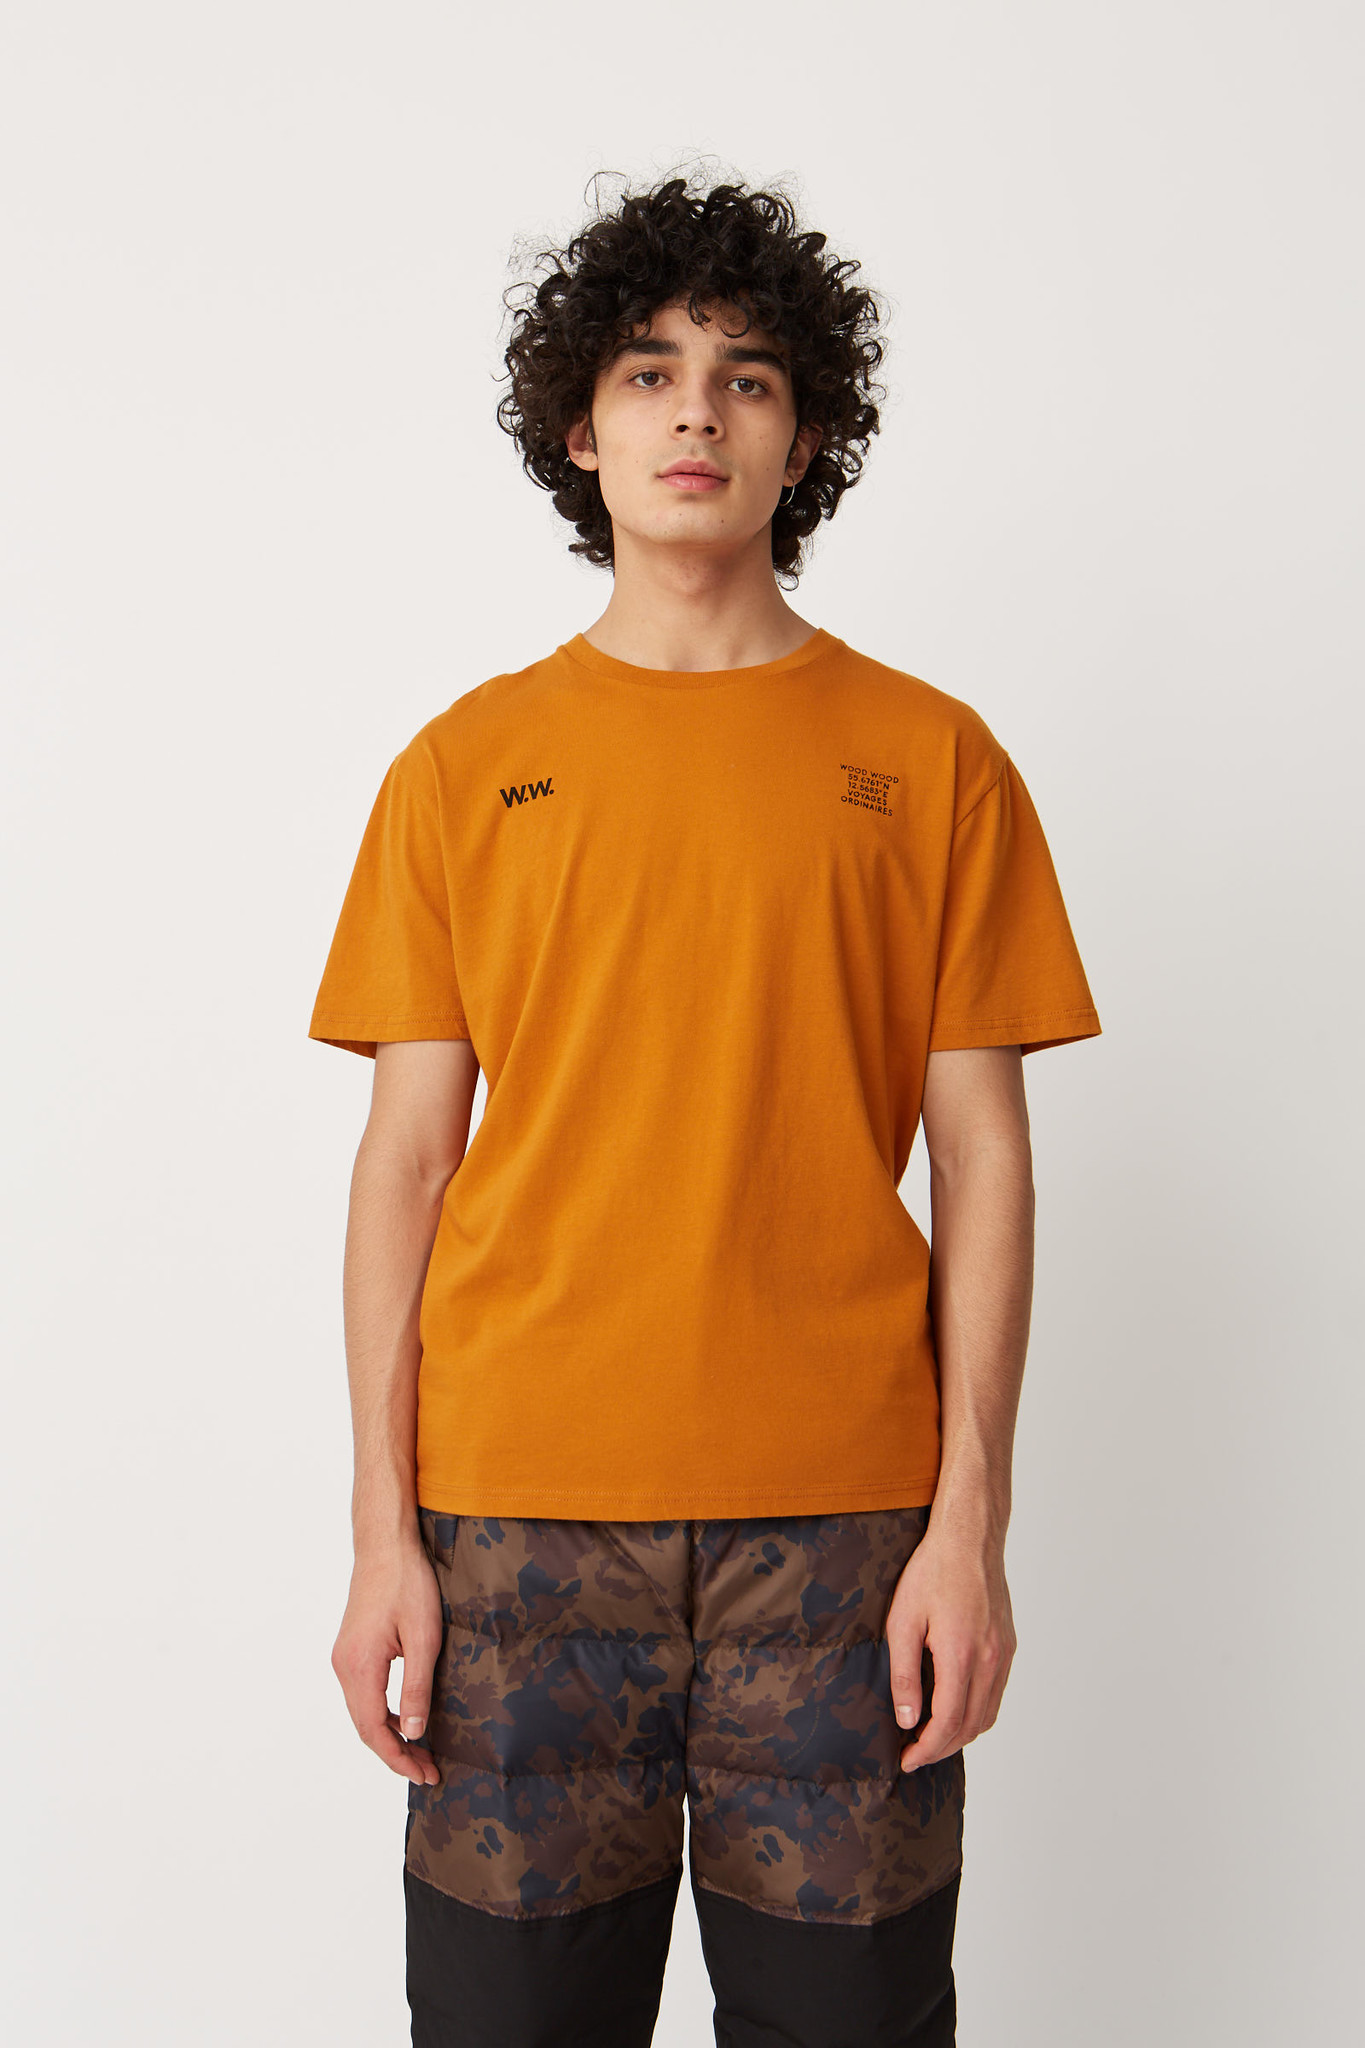 Voyages T-Shirt Orange-1